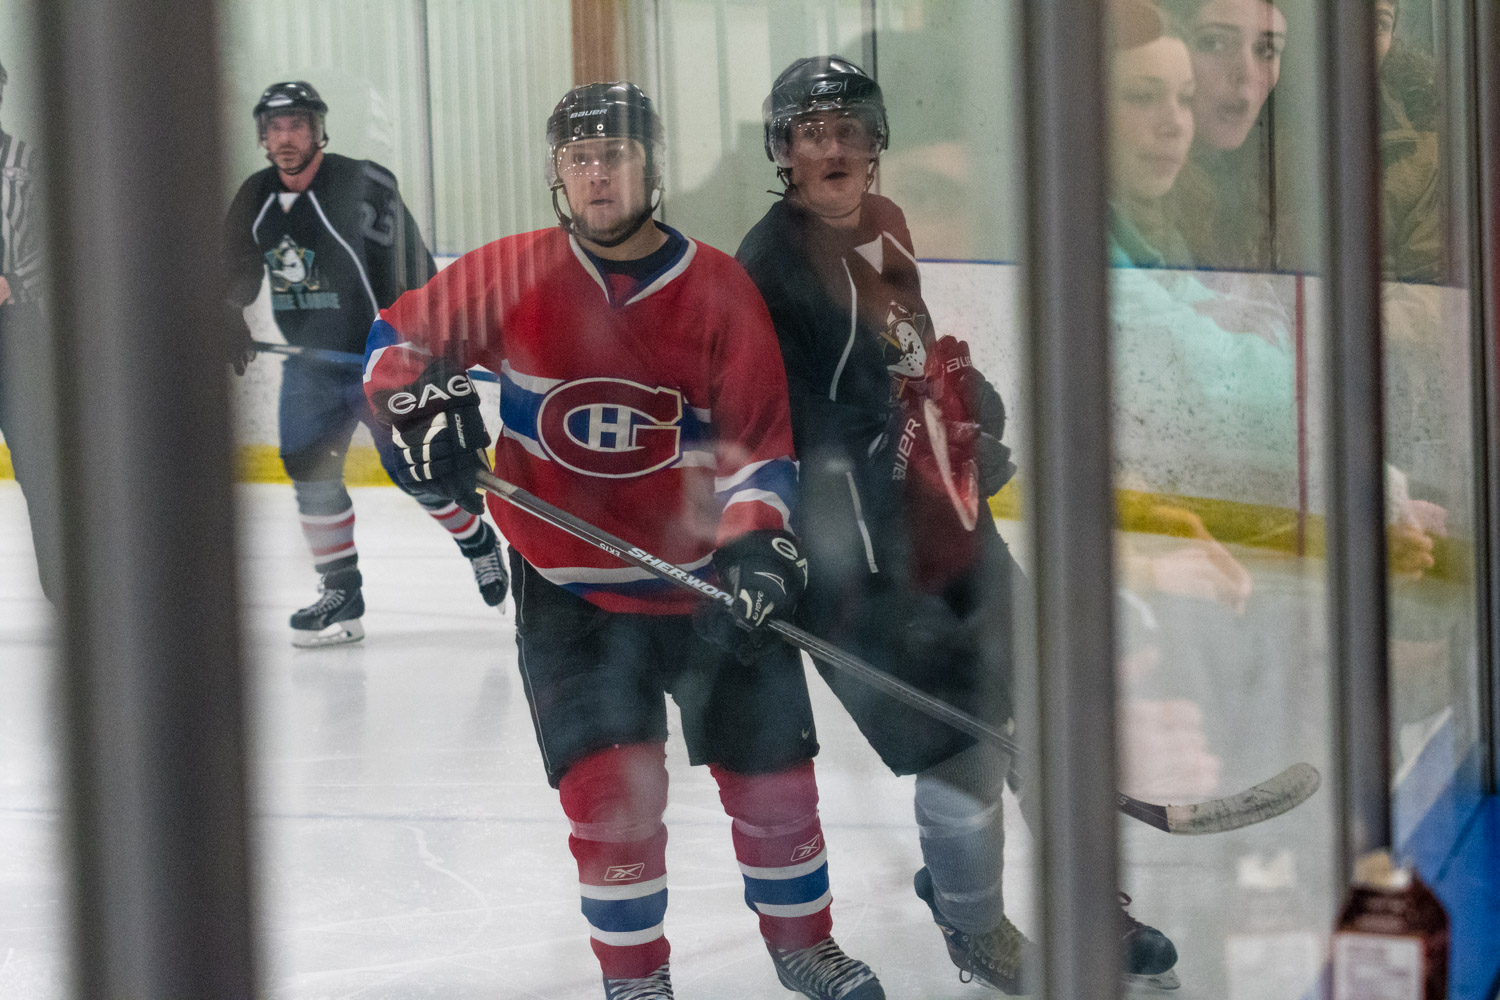 It was difficult shooting through the glass, but the reflections made for some interesting shots.